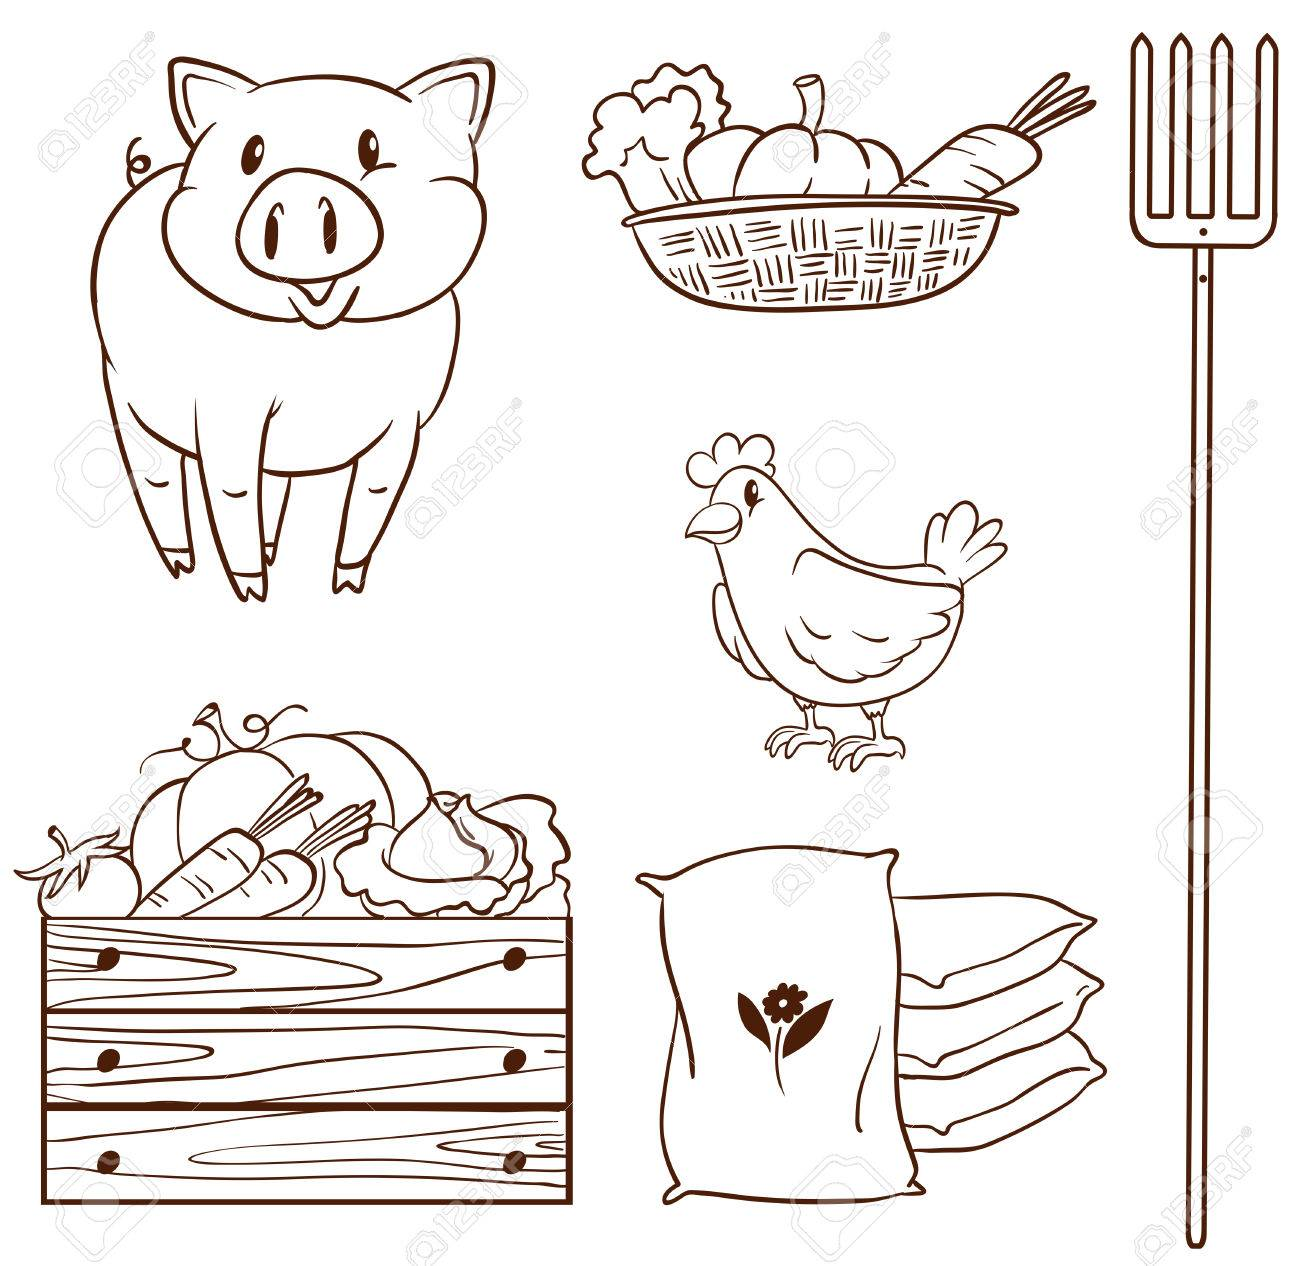 1300x1266 Illustration Of A Simple Sketch Of Farm Animals And